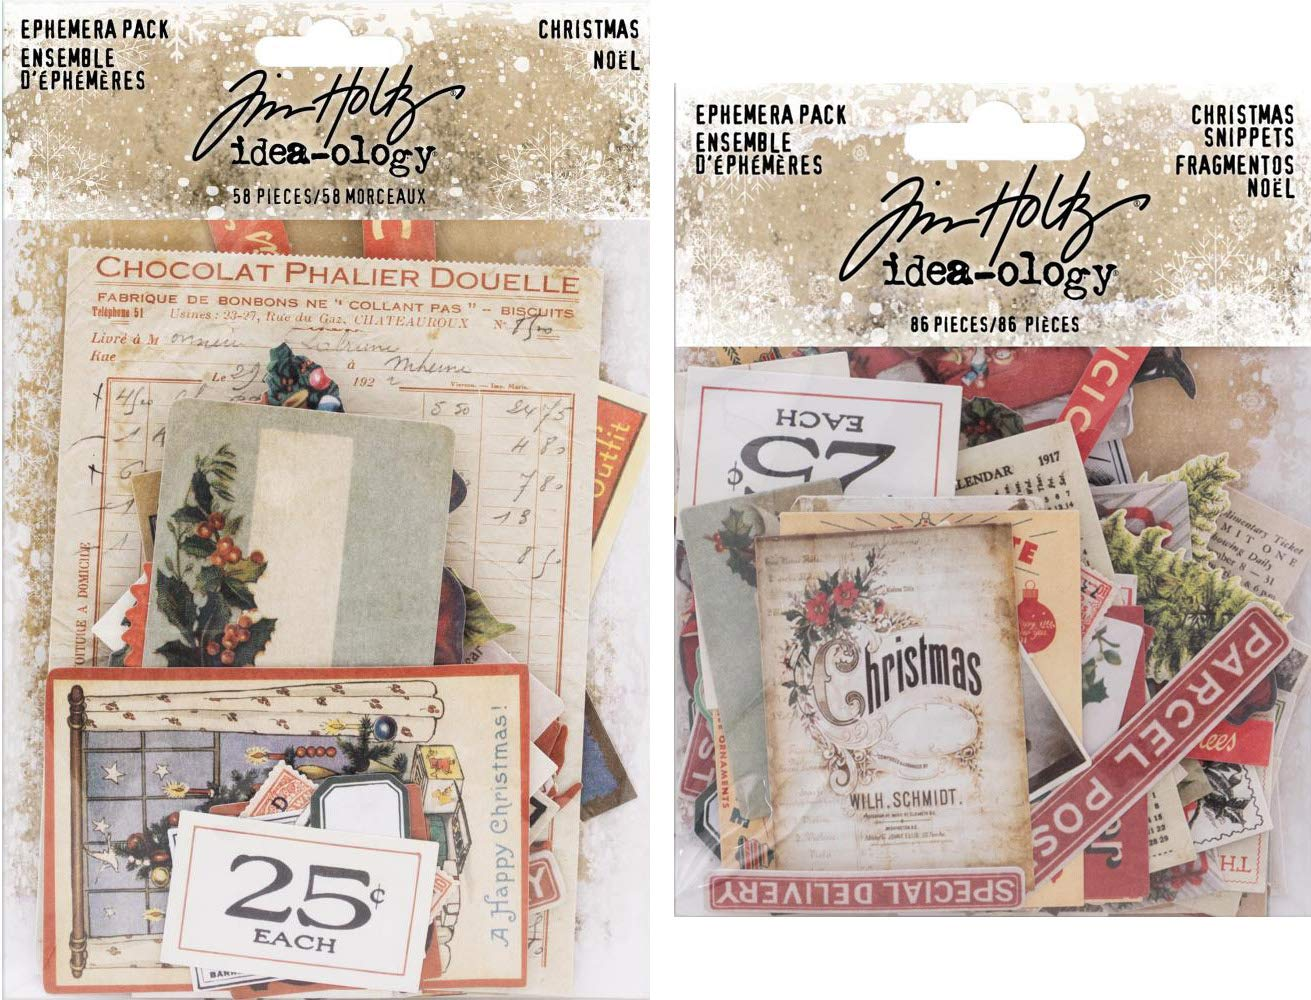 Tim Holtz Idea-Ology 2018 Christmas Ephemera Pack & Christmas Snippets Pack - 2 Items